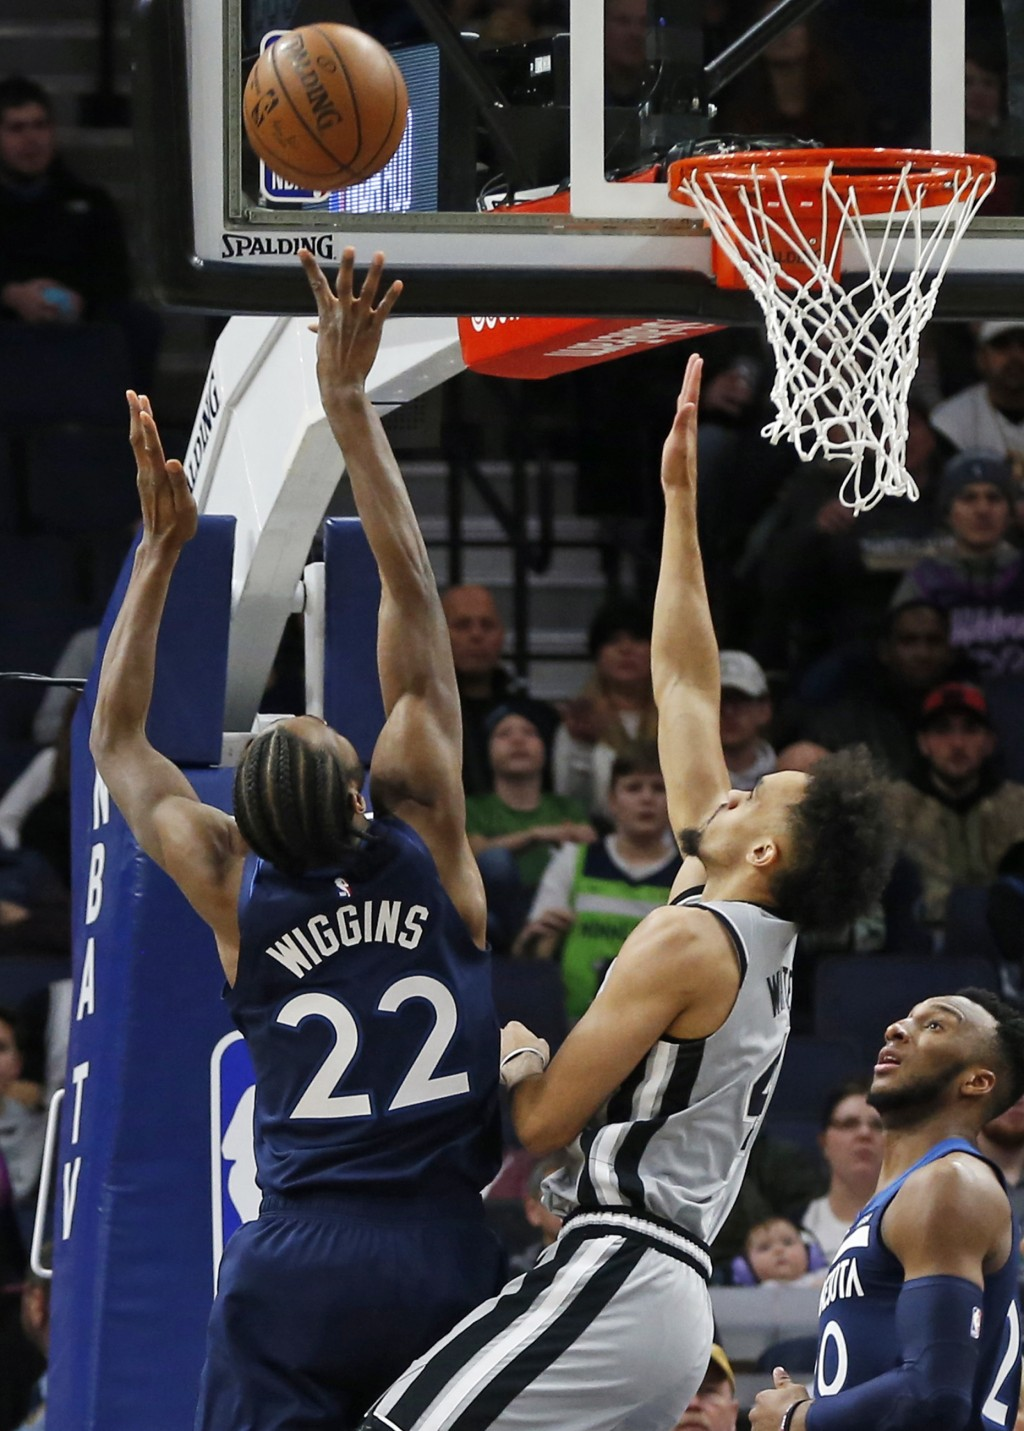 Minnesota Timberwolves' Andrew Wiggins, left, shoots as San Antonio Spurs' Derrick White defends in the first half of an NBA basketball game Friday, J...